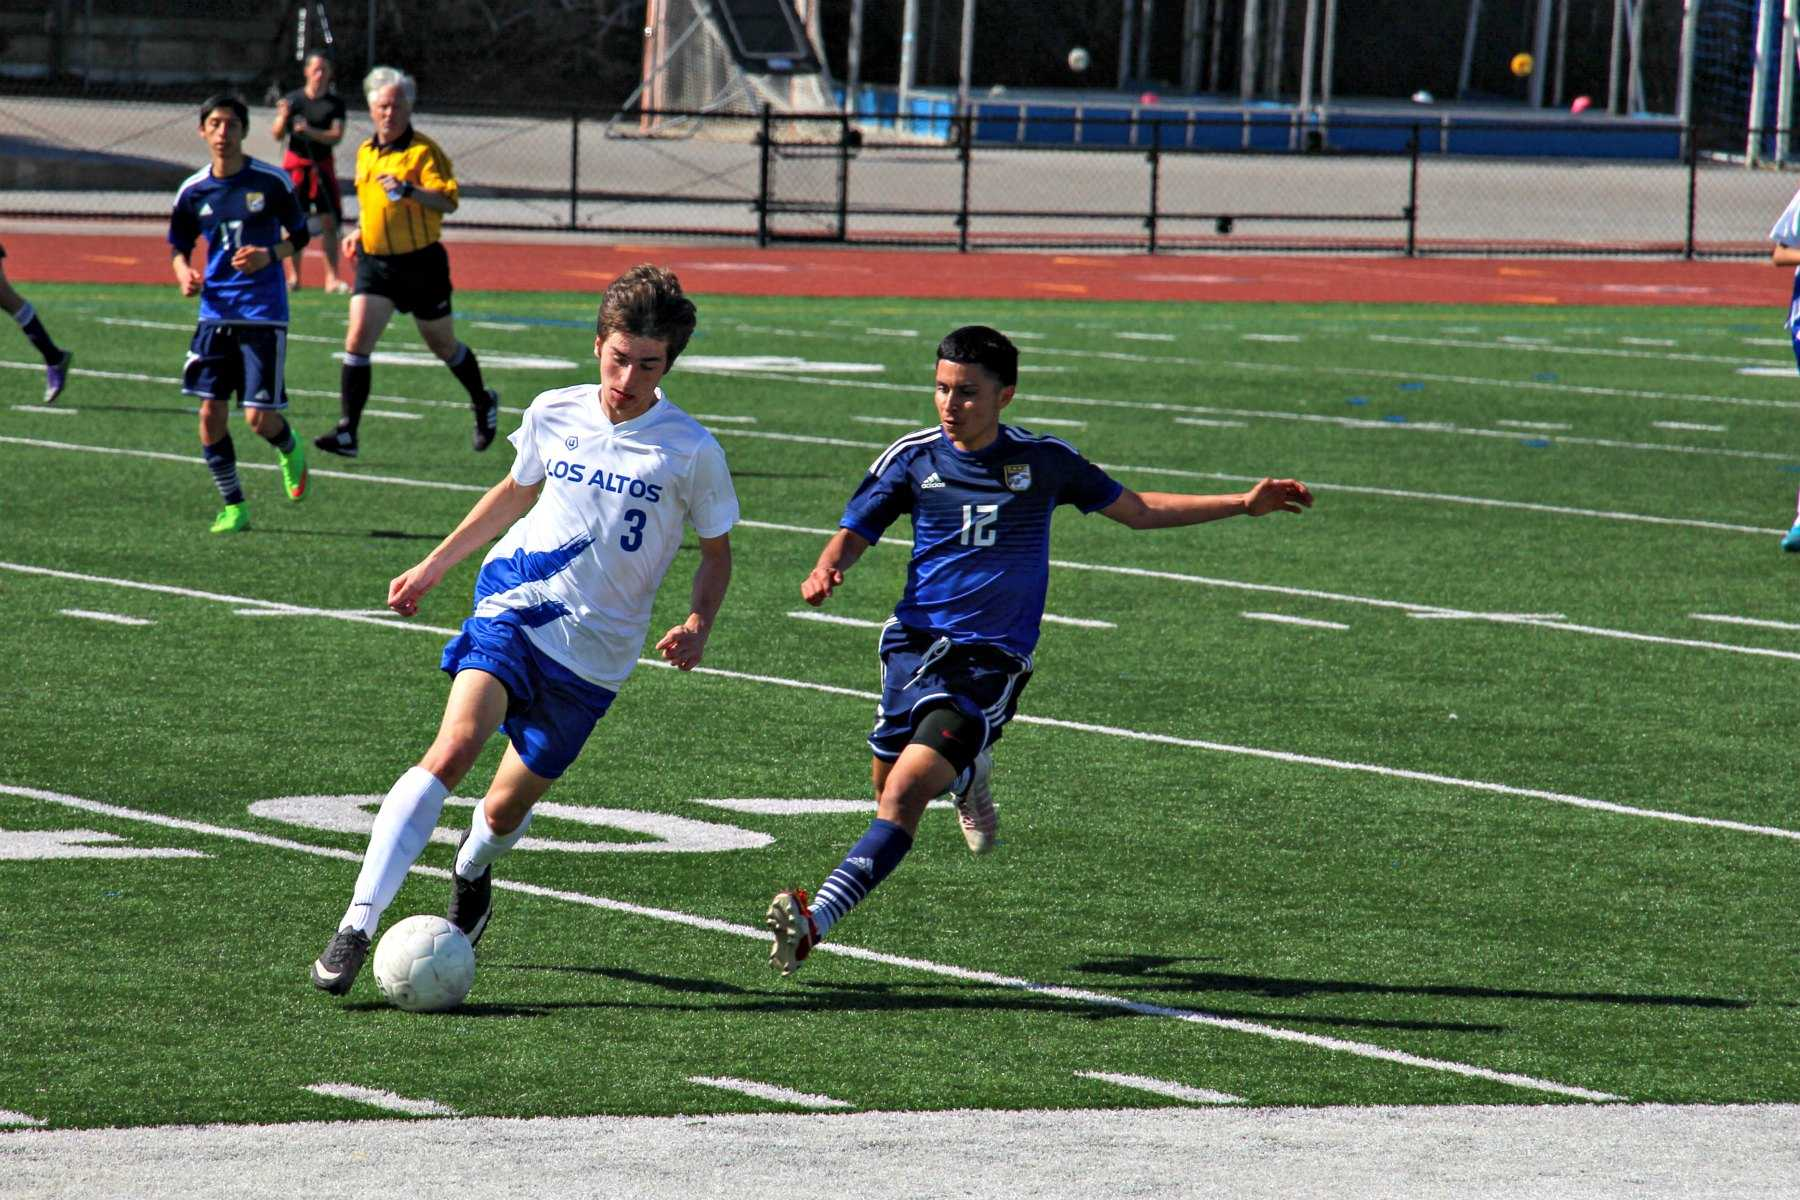 Senior Joe Kull dribbles the ball near a defender. Photo by Michael Sieffert.